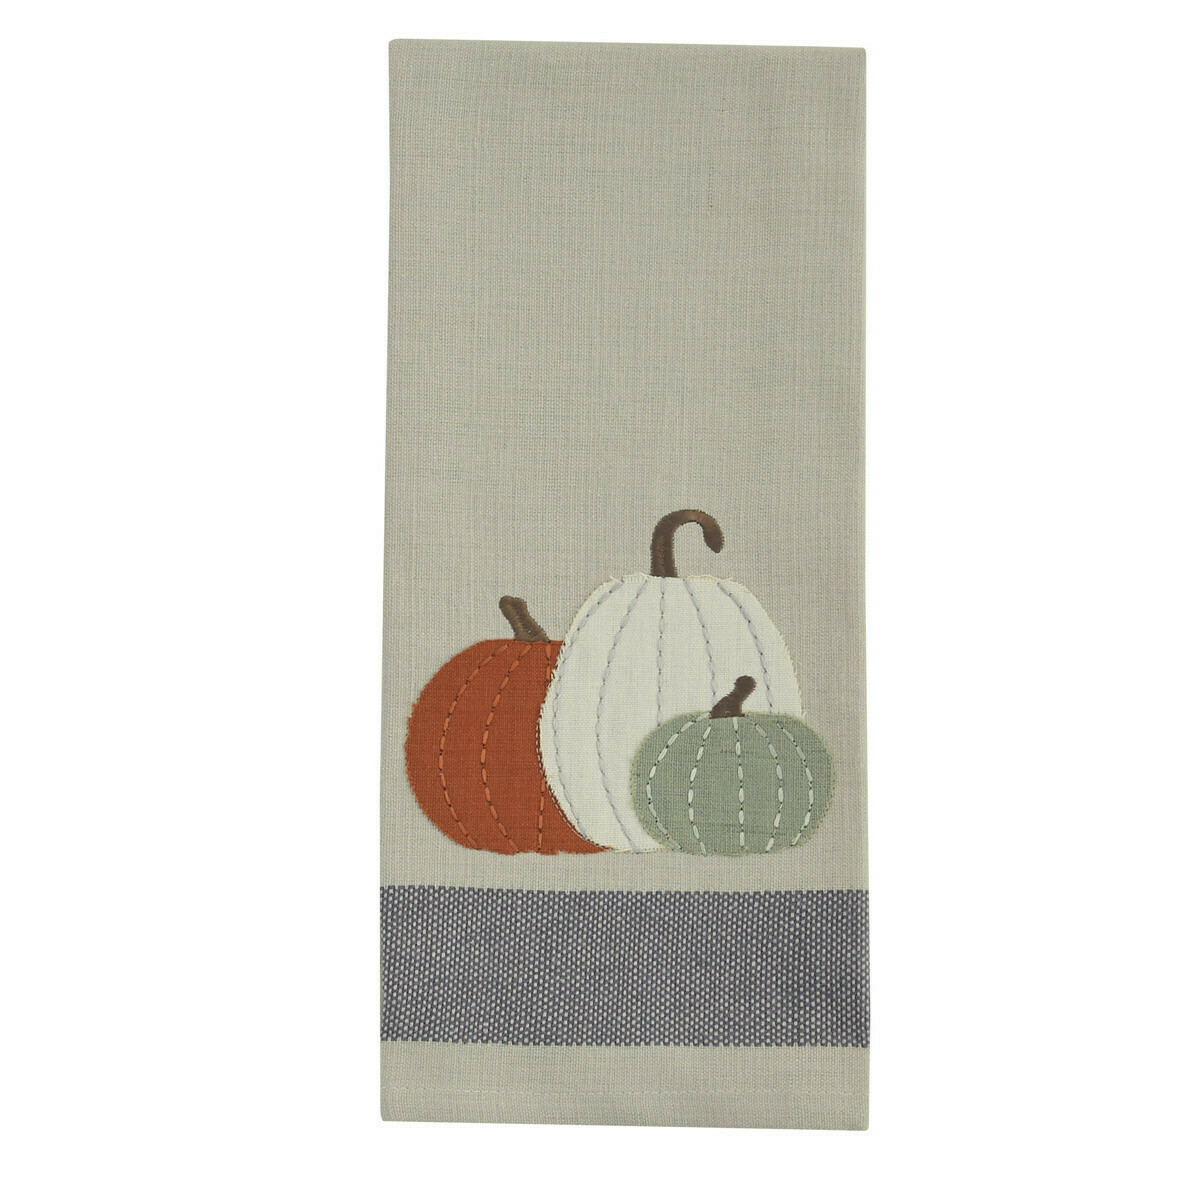 Pick of the Patch Decorative Dishtowel